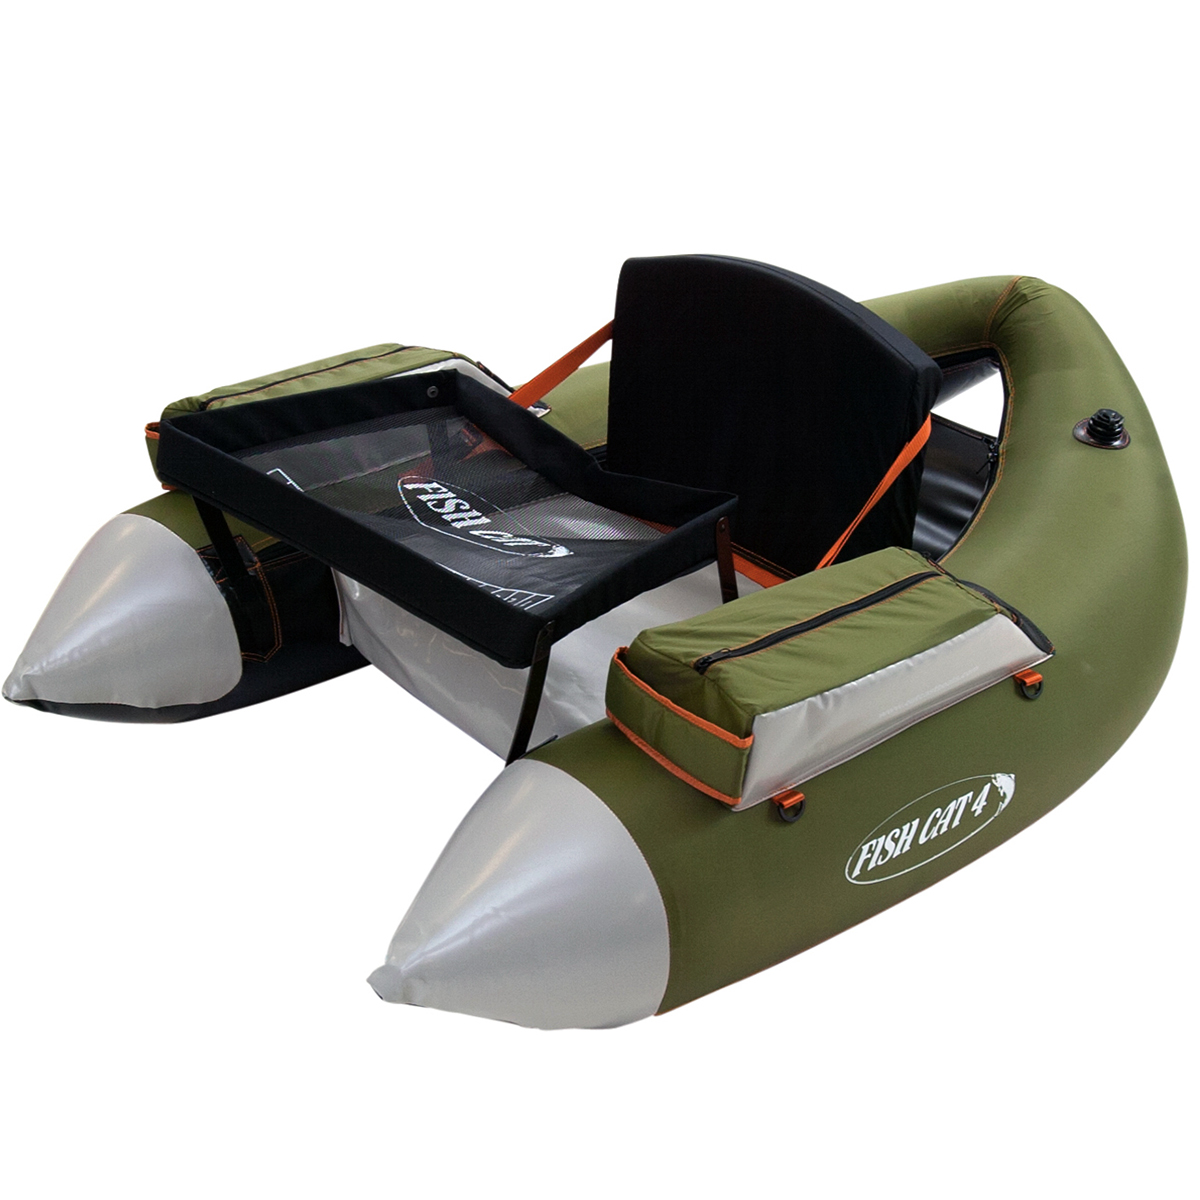 Outcast fish cat 4 lcs belly boat floating tubes ebay for Fish cat 4